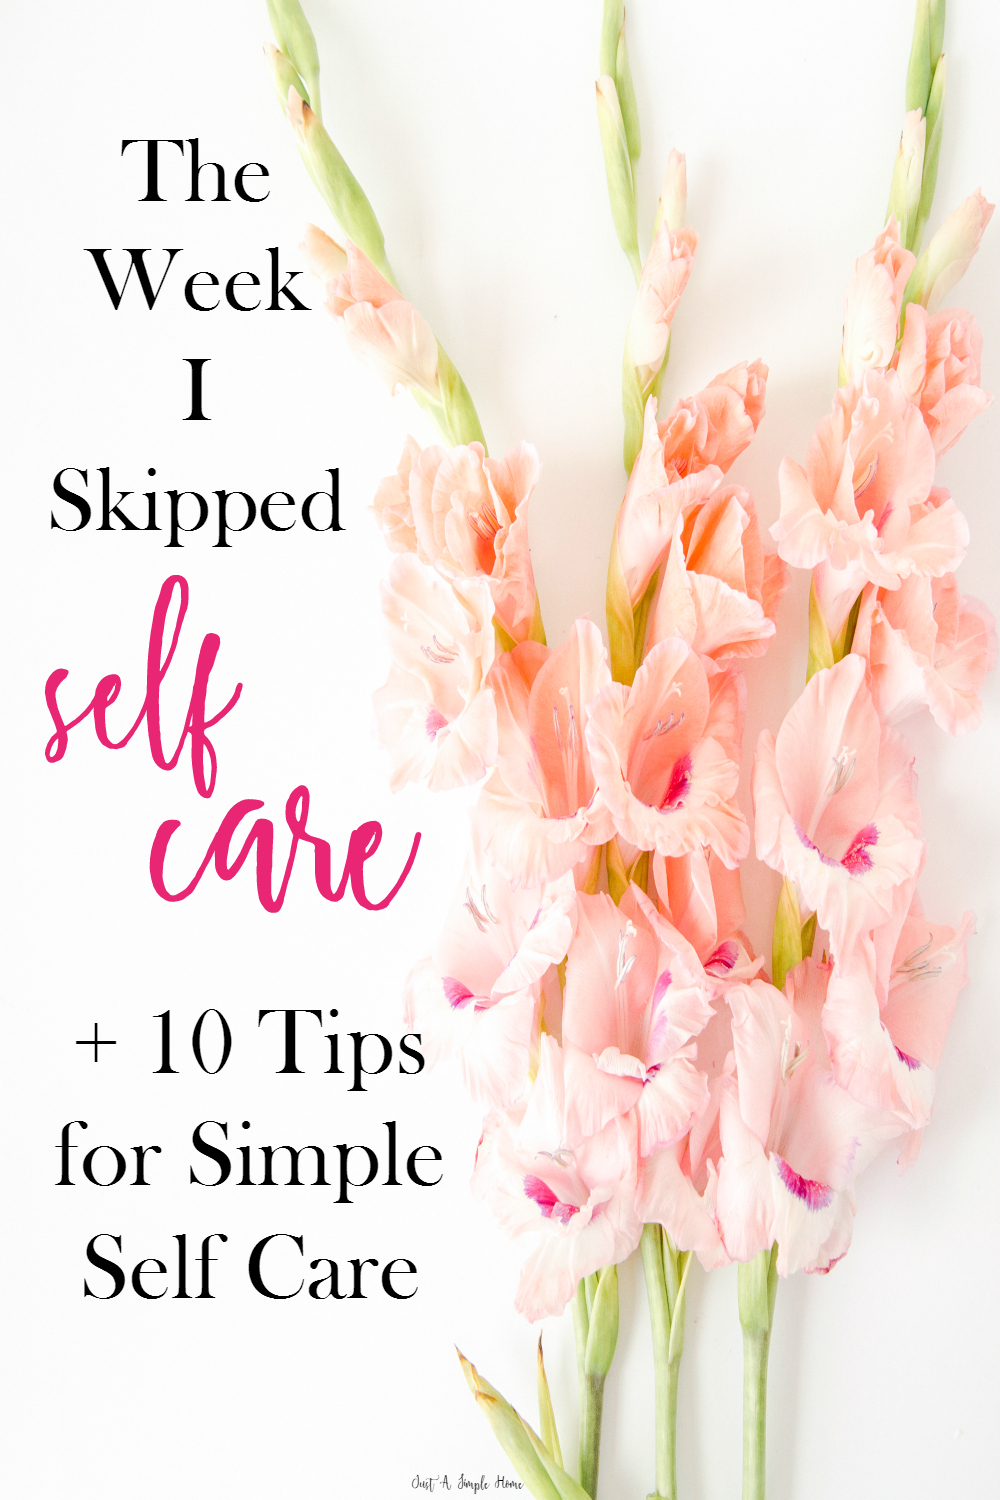 10 Tips for Simple Self Care